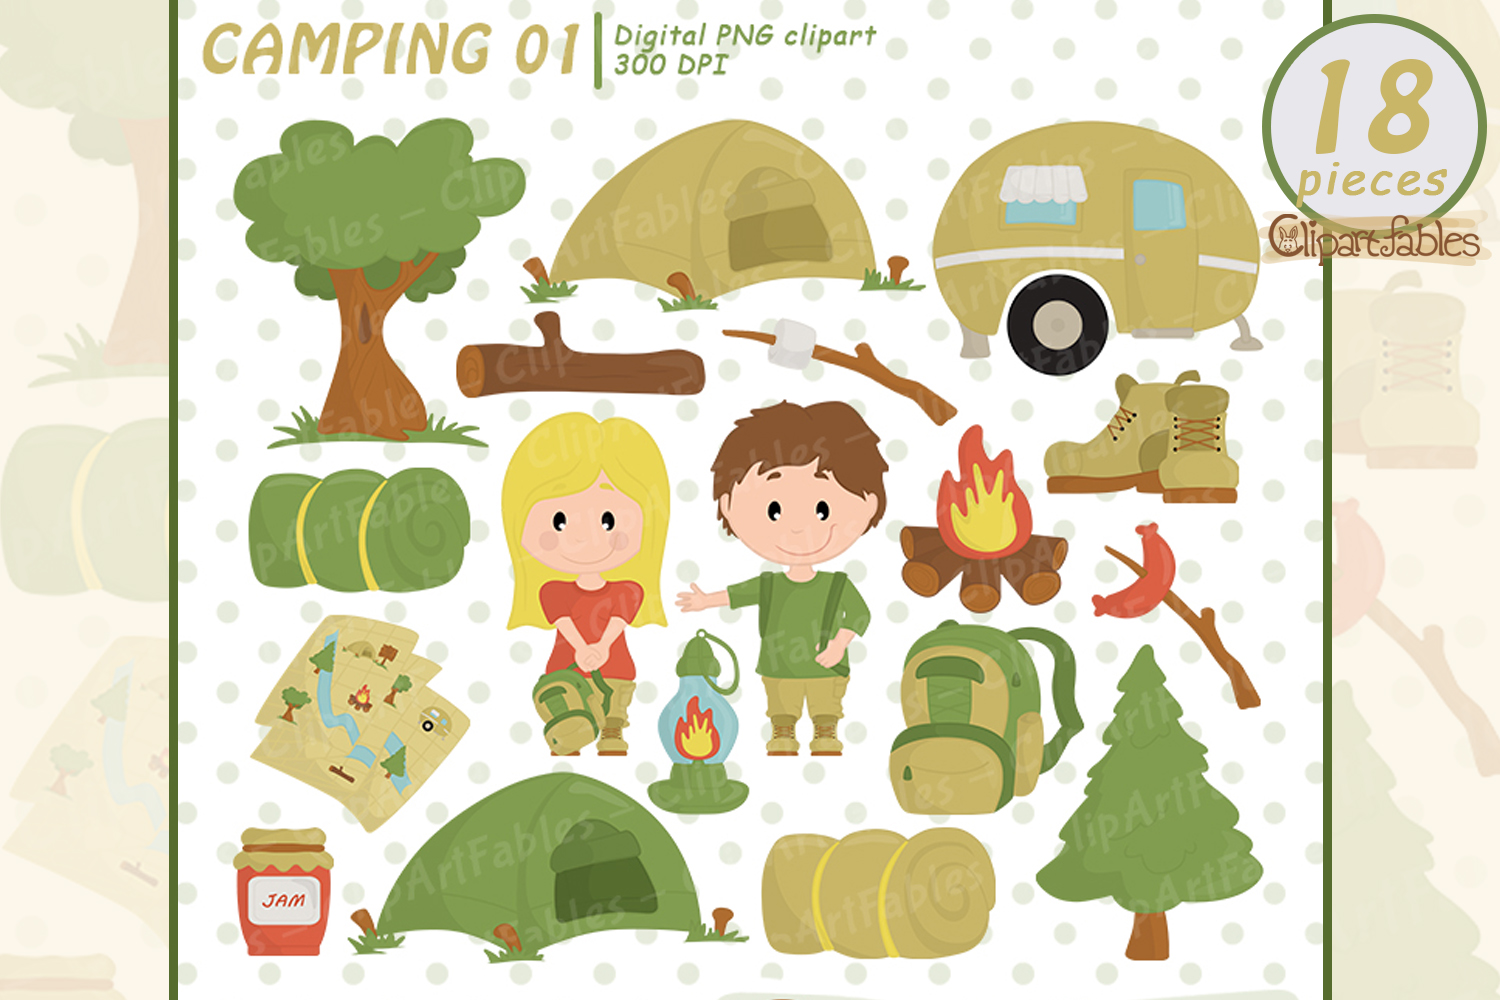 Camping clipart images image freeuse CAMPING clipart, Camp fire art, outdoor - instant download image freeuse